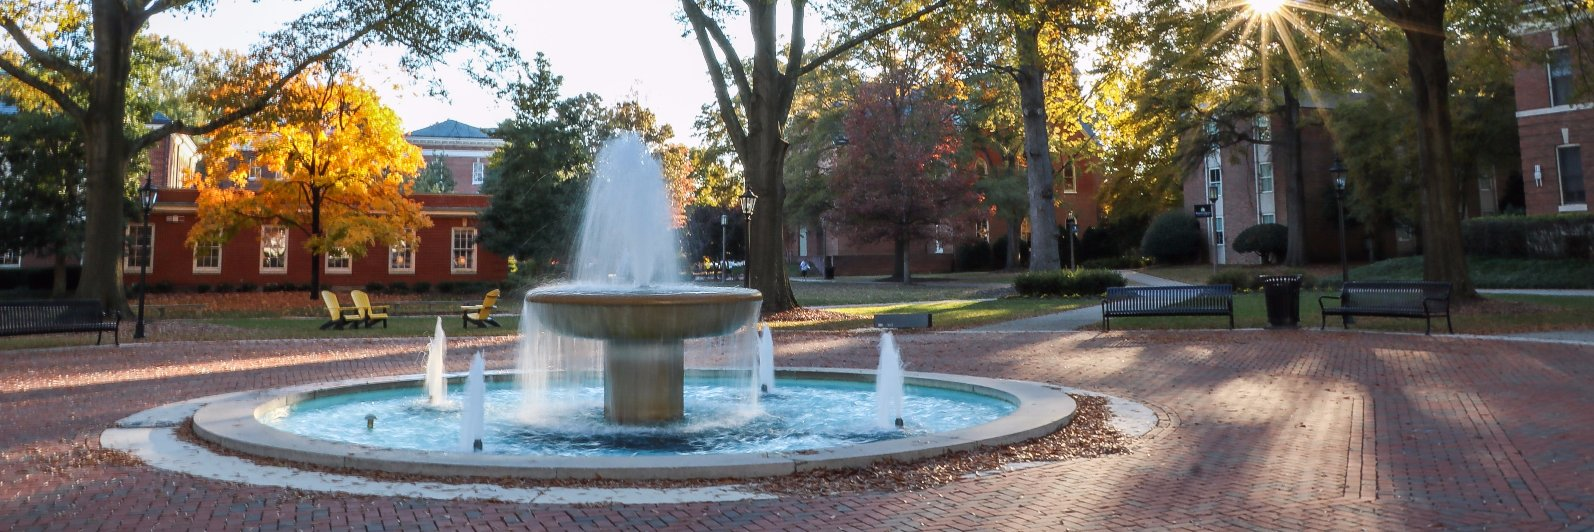 Randolph-Macon College's official Twitter account